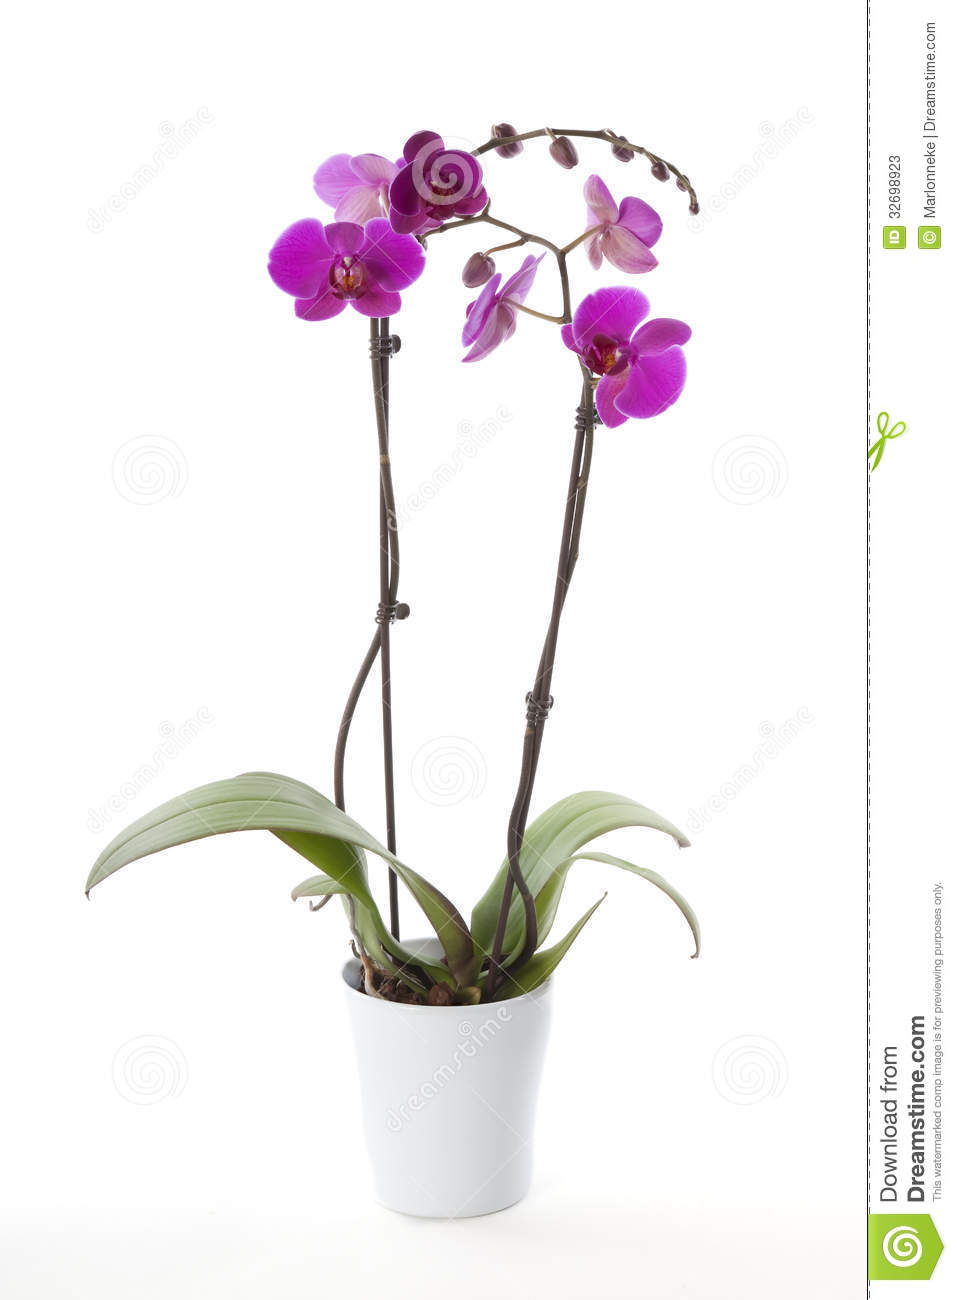 Phalaenopsis Orchid In Flower Pot Stock Photos - Image: 32698923